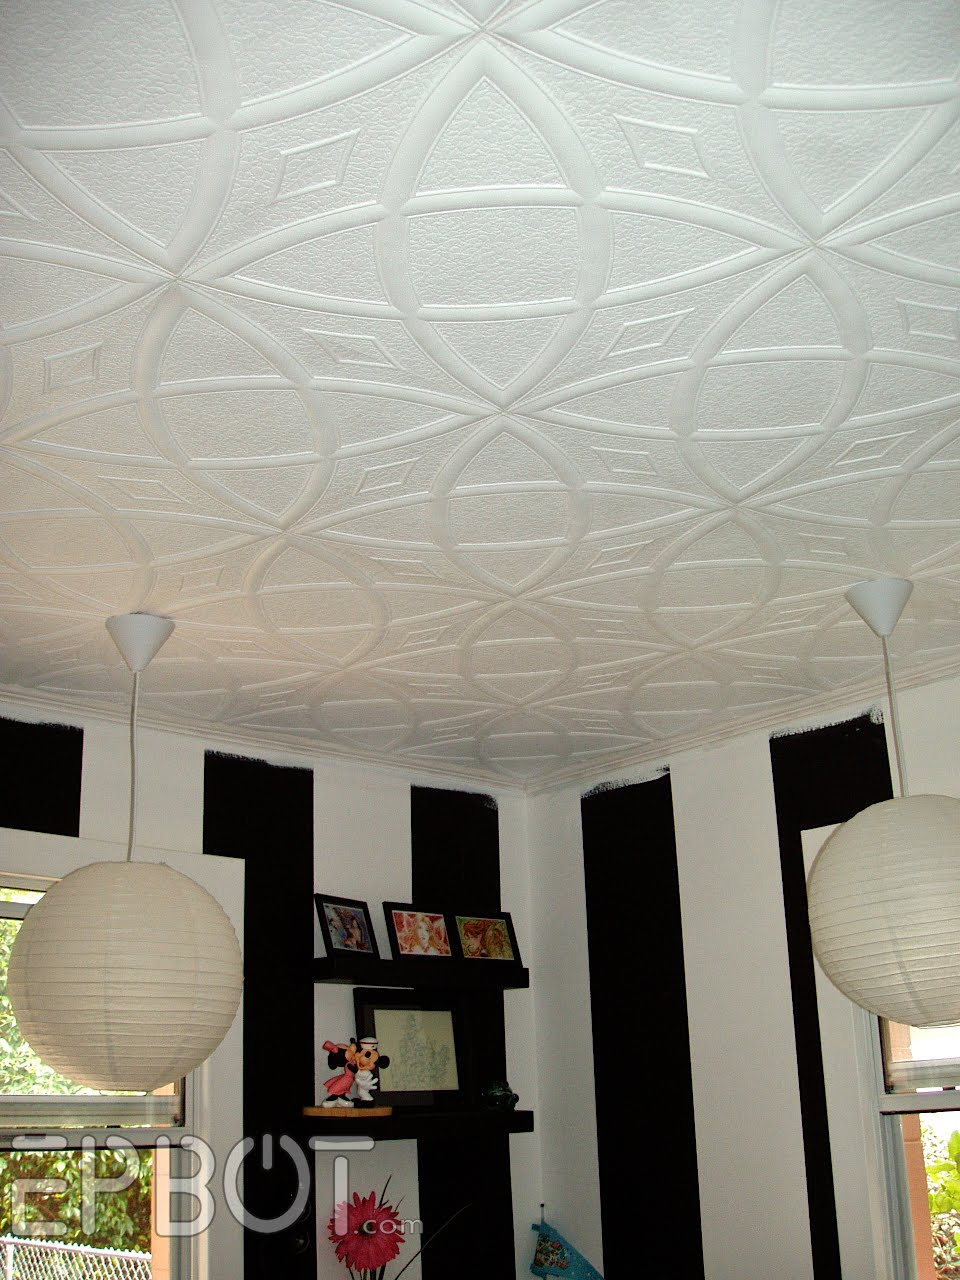 Epbot officially a mess i have to rave about these ceiling tiles for a second theyre made of lightweight foam and simply glue over existing popcorn ceilings fo realz dailygadgetfo Images